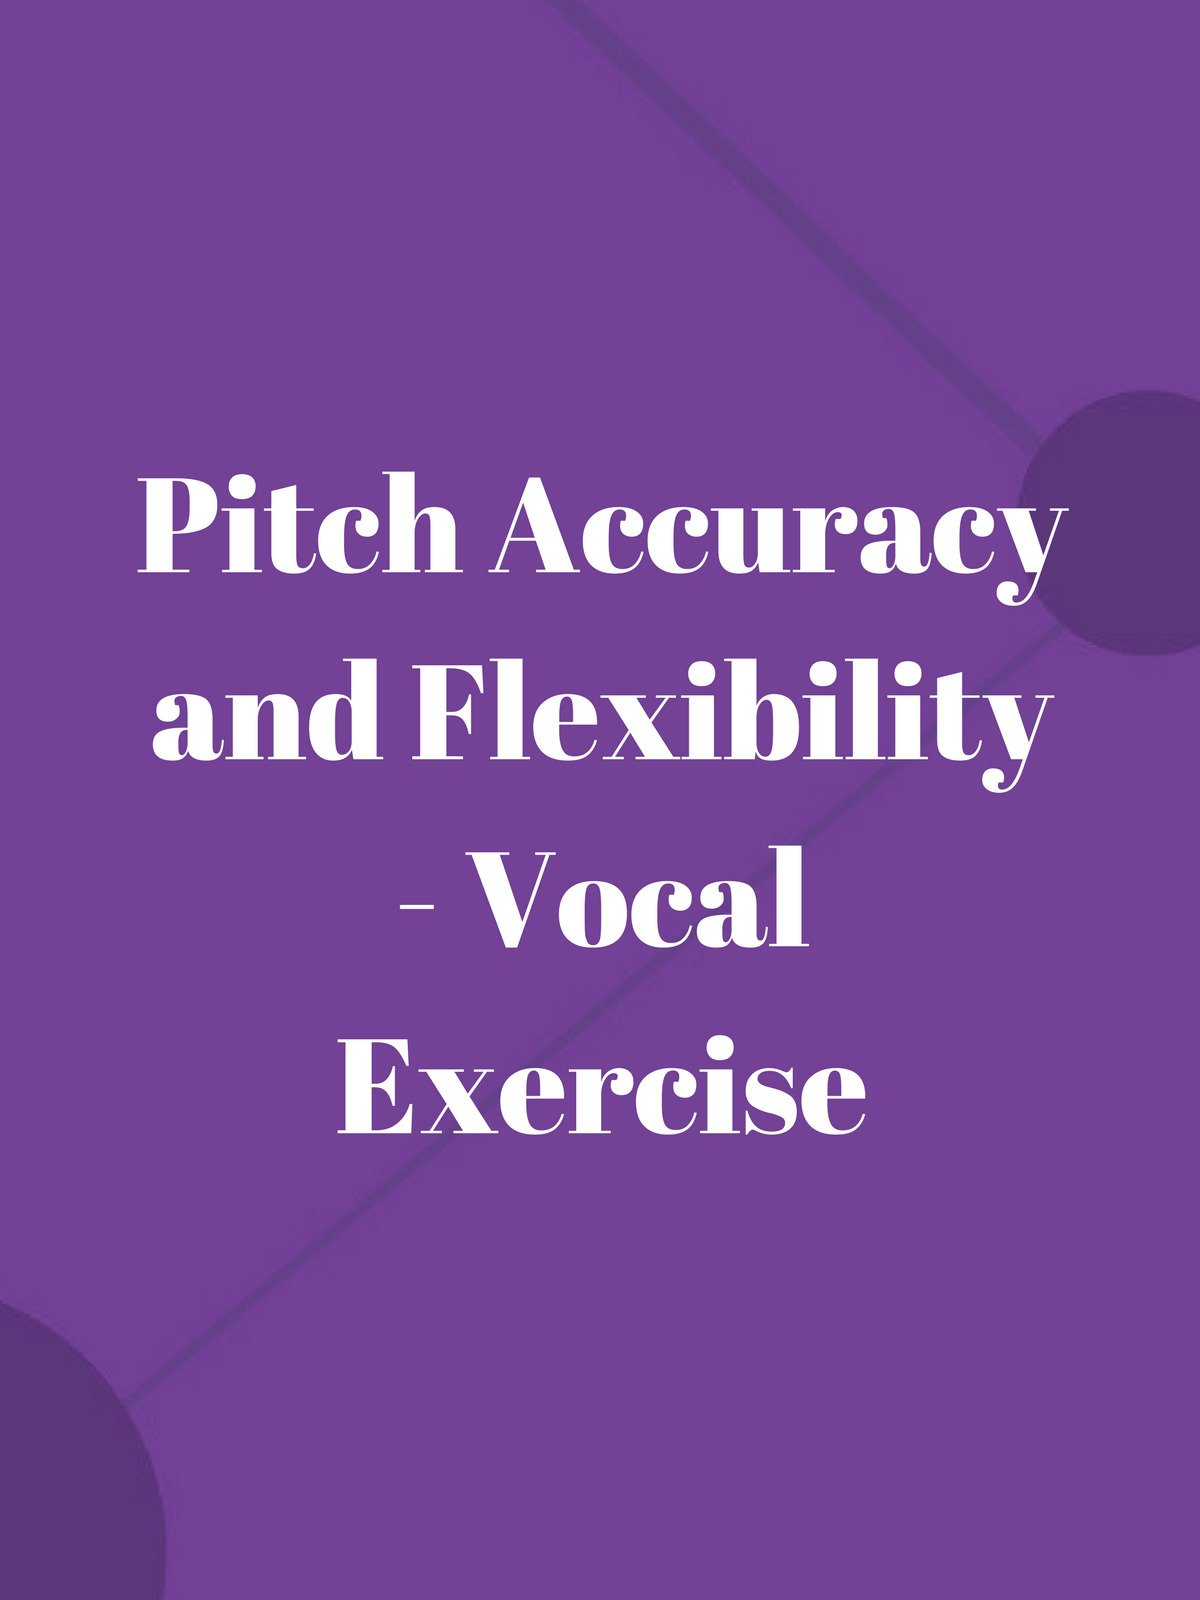 Pitch Accuracy and Flexibility